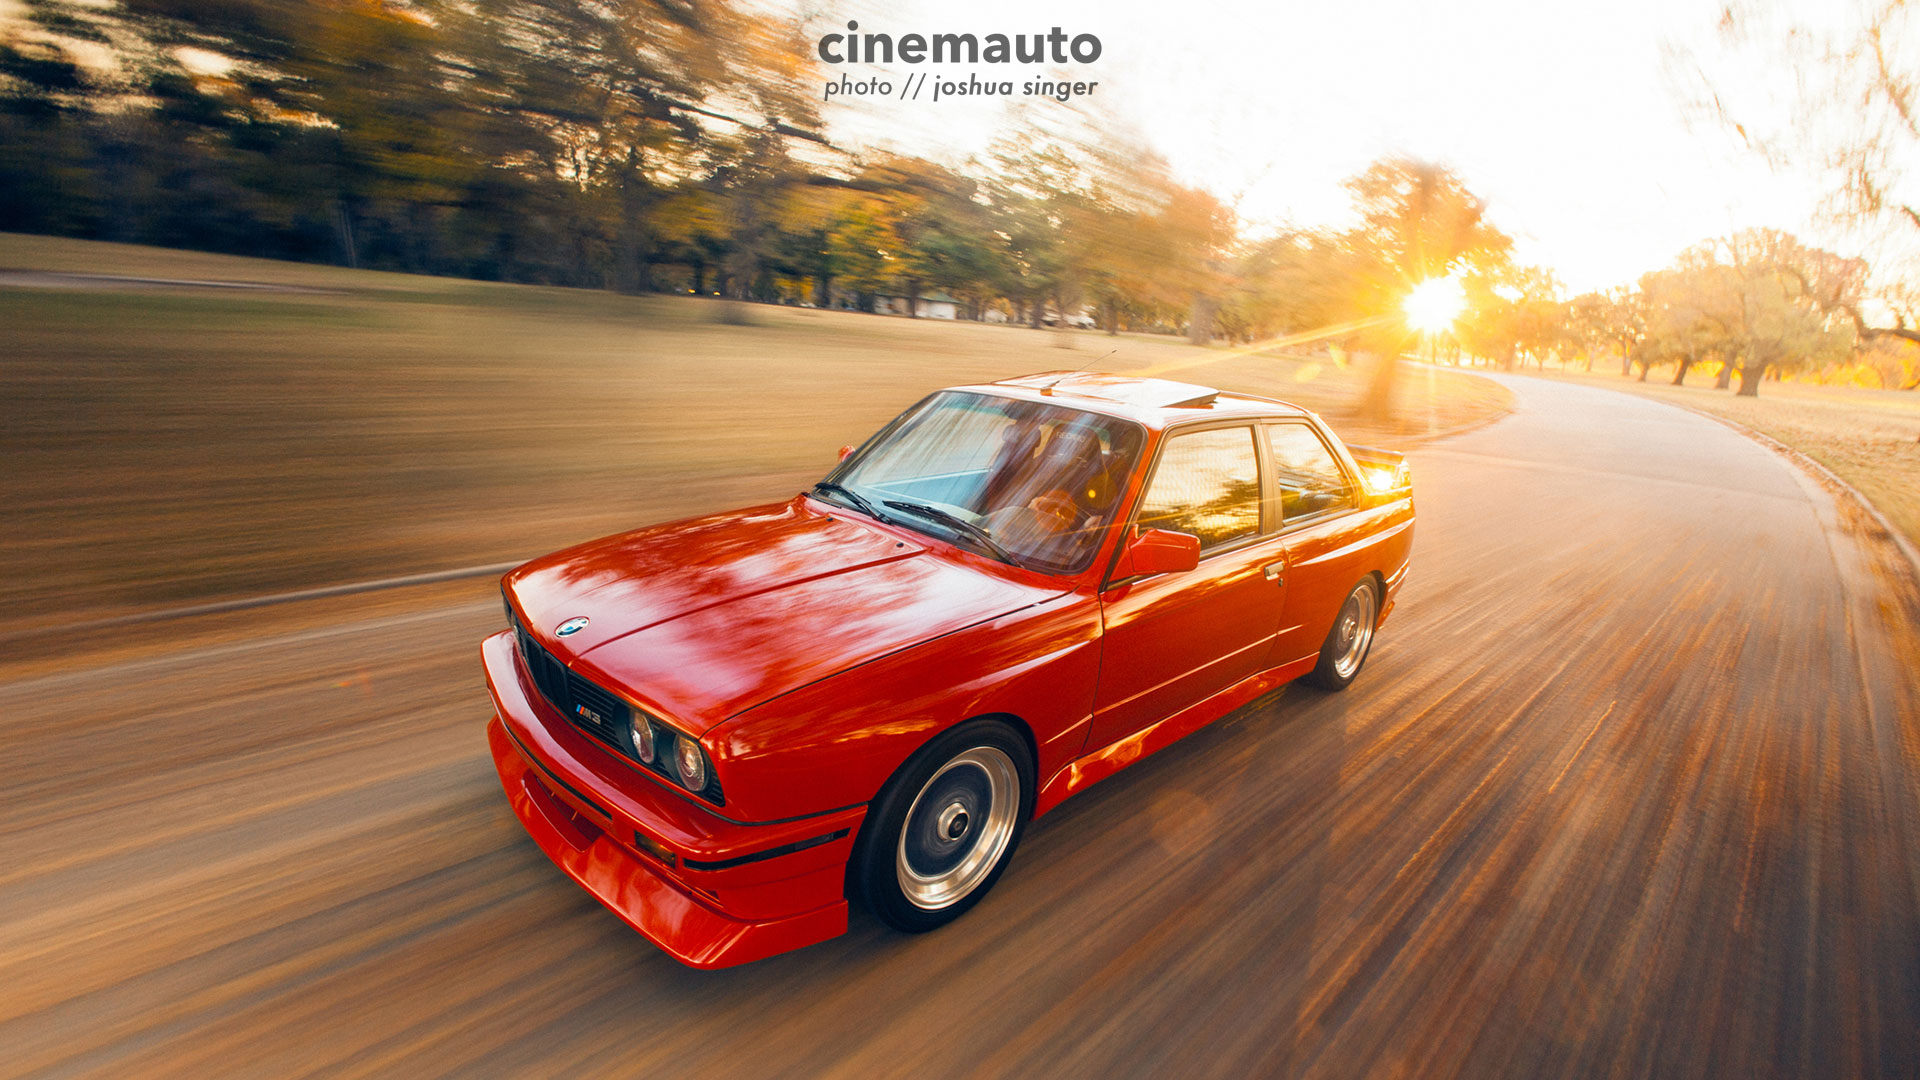 cinemauto-wichita-automotive-videography-midwest-car-cinematography-kk15.jpg